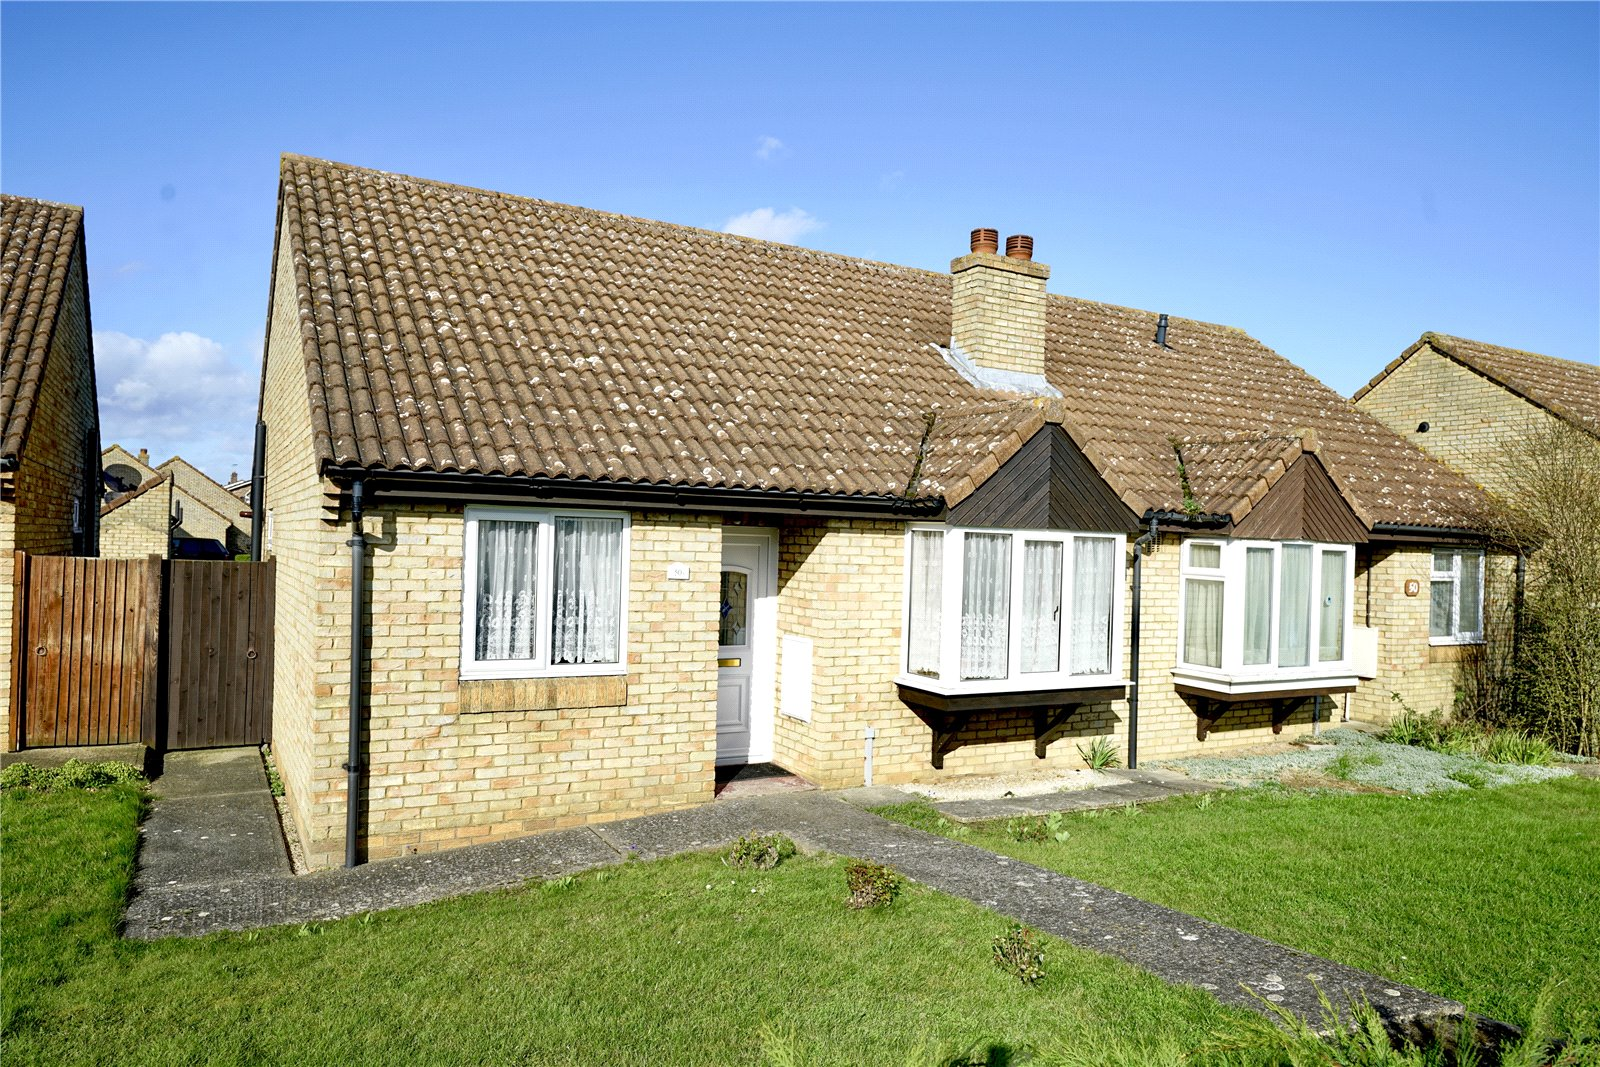 2 bed bungalow for sale in Eaton Socon, Bushmead Road, PE19 8GR  - Property Image 1